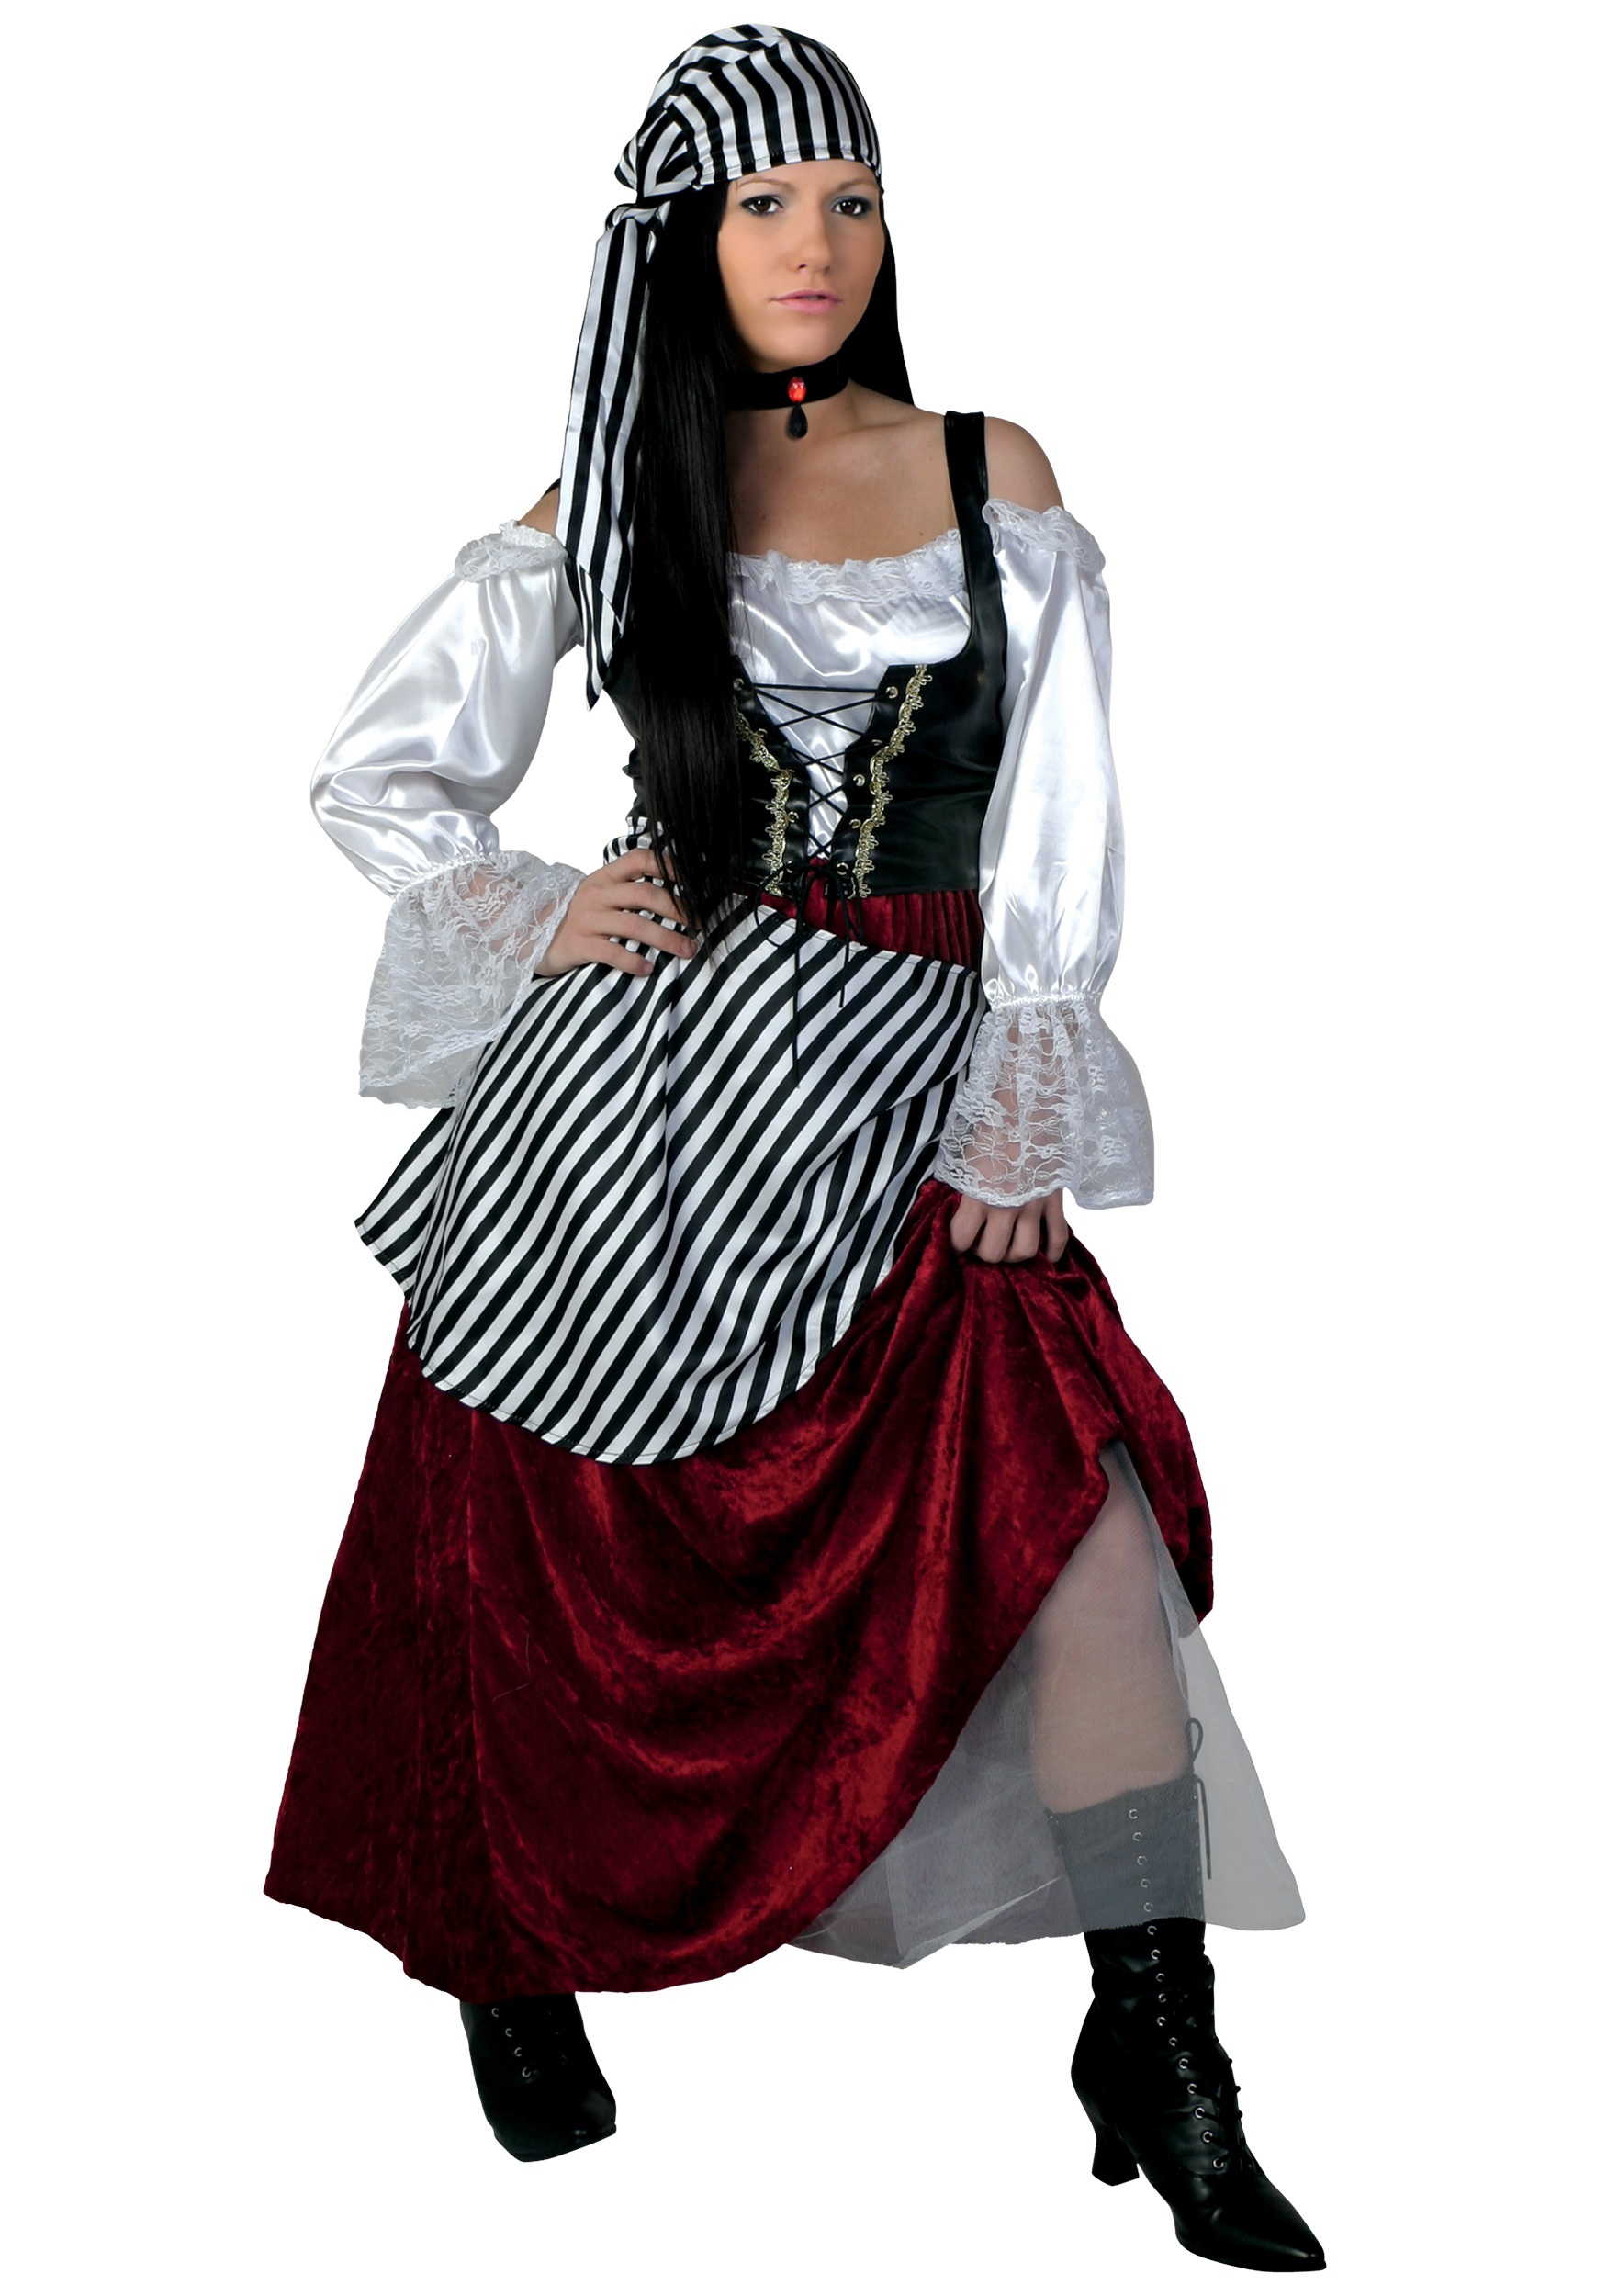 Plus Size Deluxe Pirate Wench Costume  sc 1 st  Halloween Costumes & Rental Costumes - Costumes for Rent - HalloweenCostumes.com